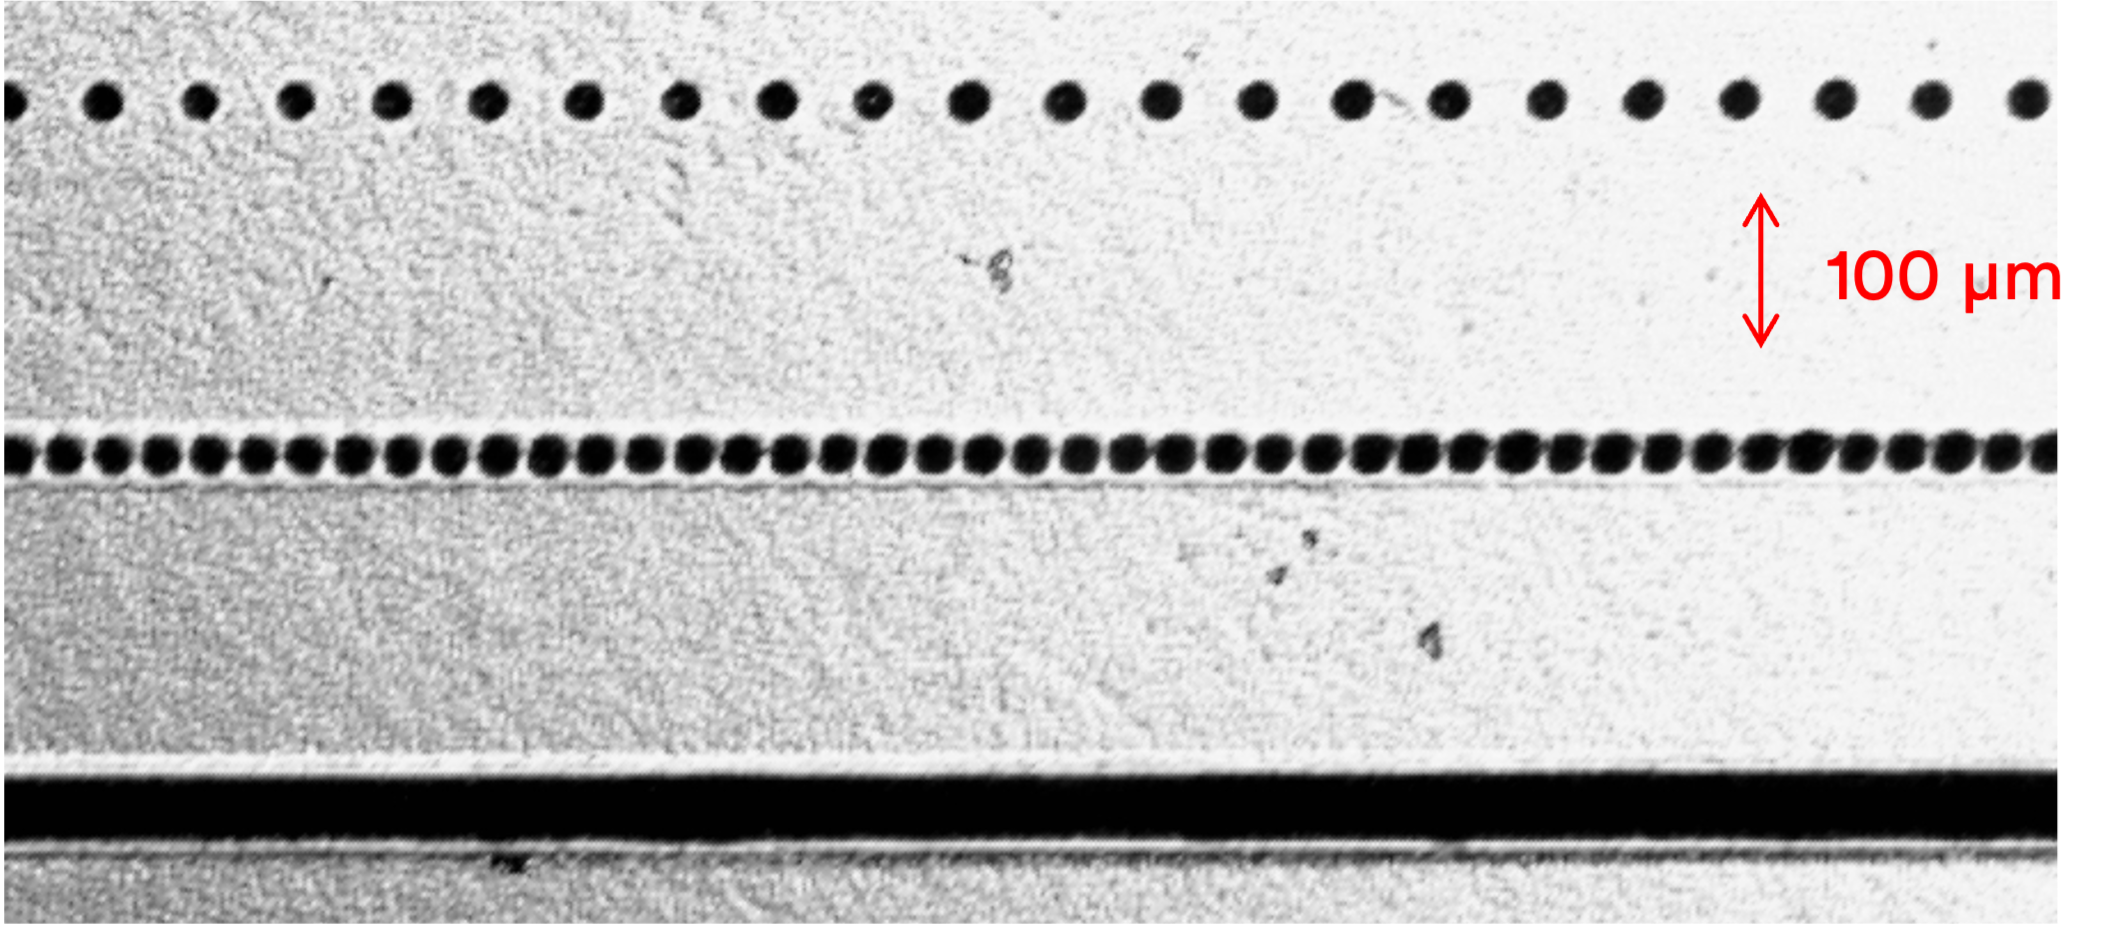 Laser processing of polymer in the mid-infrared – Why ?